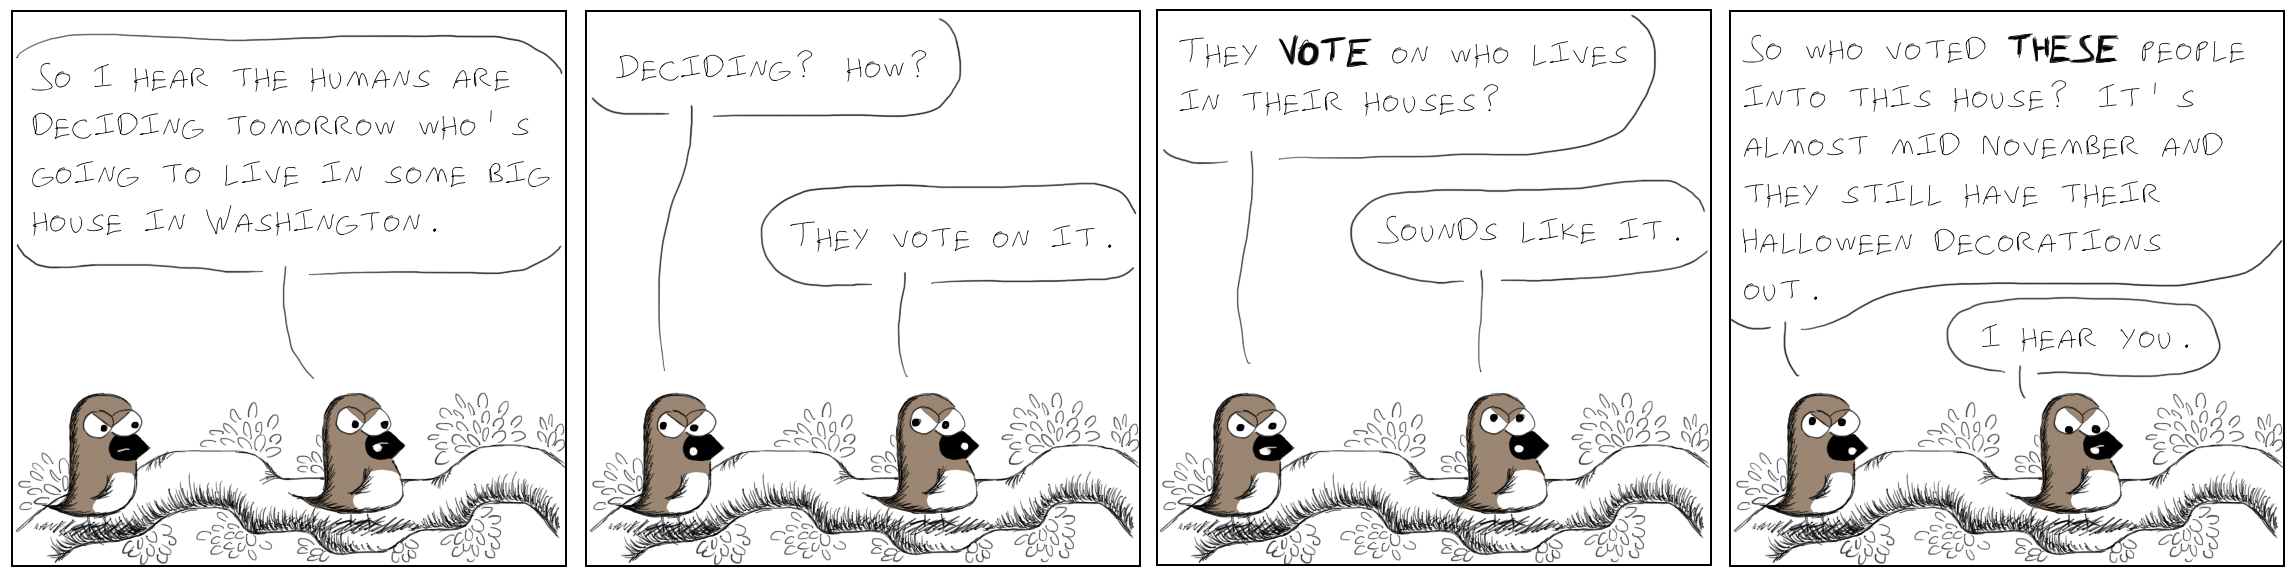 421election